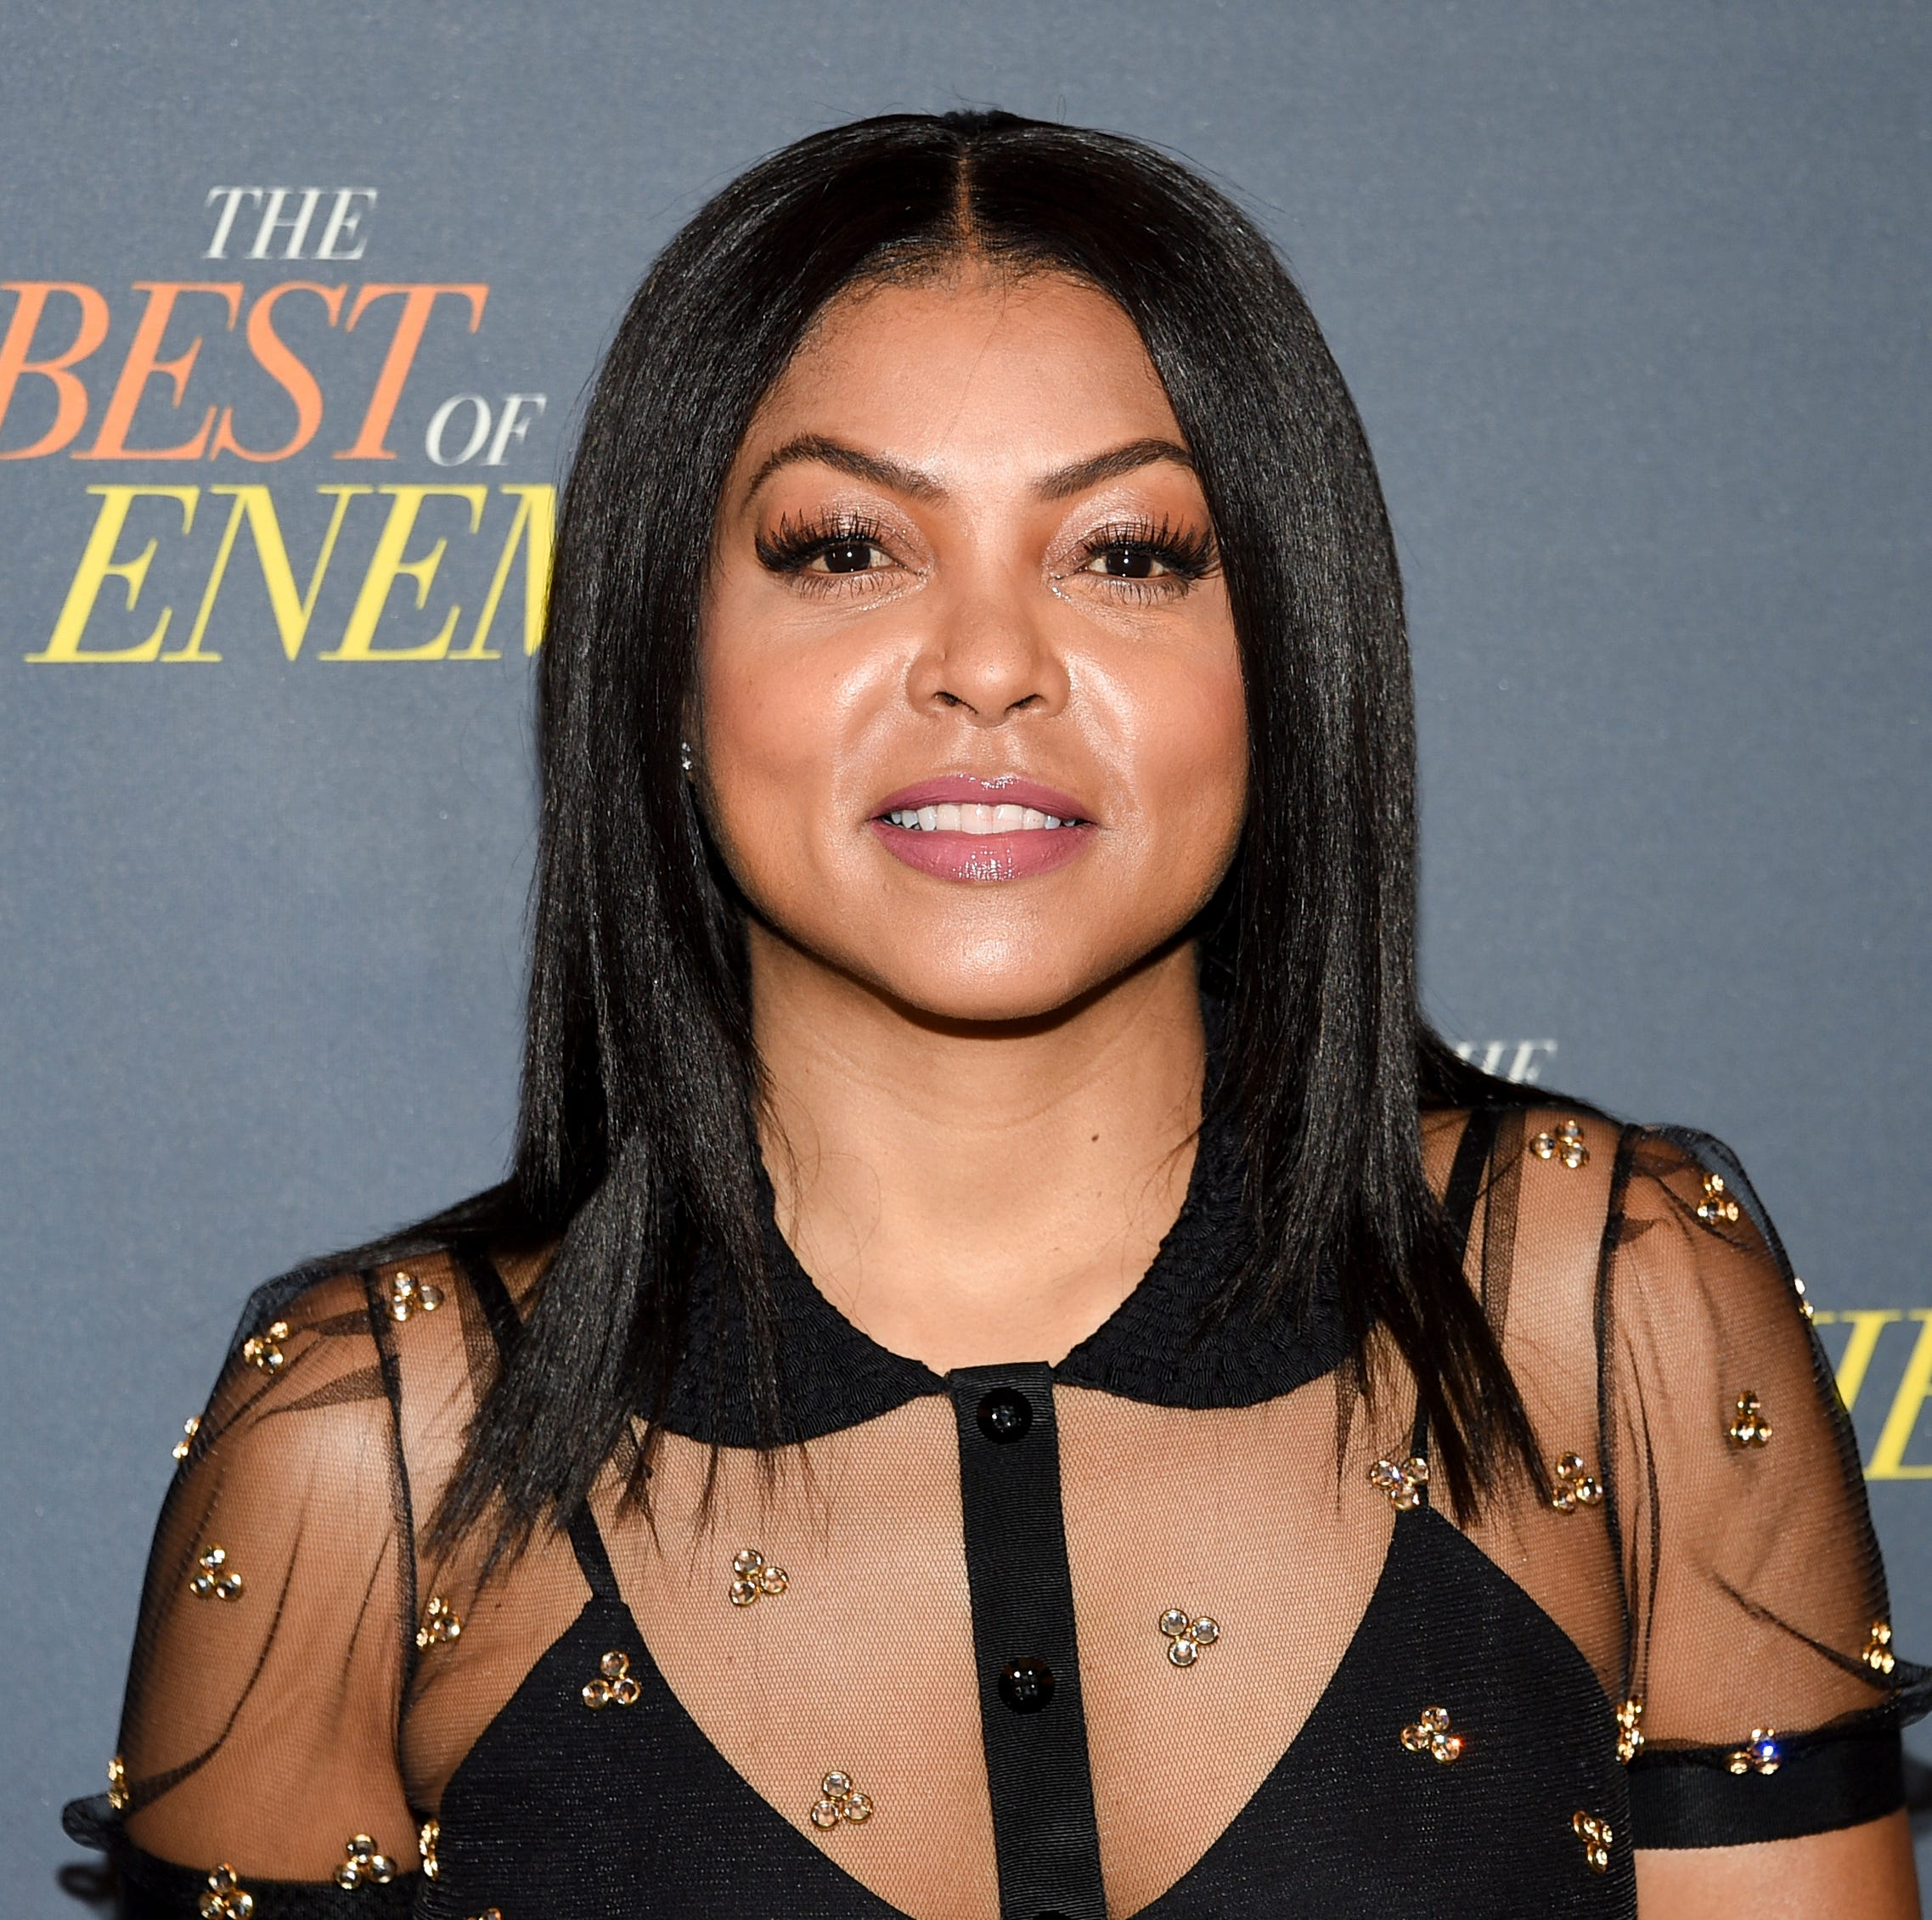 """Actress Taraji P. Henson poses during the """"The Best of Enemies"""" cast photo call at The Whitby Hotel on Sunday, March 17, 2019, in New York. (Photo by Evan Agostini/Invision/AP) ORG XMIT: NYEA112"""